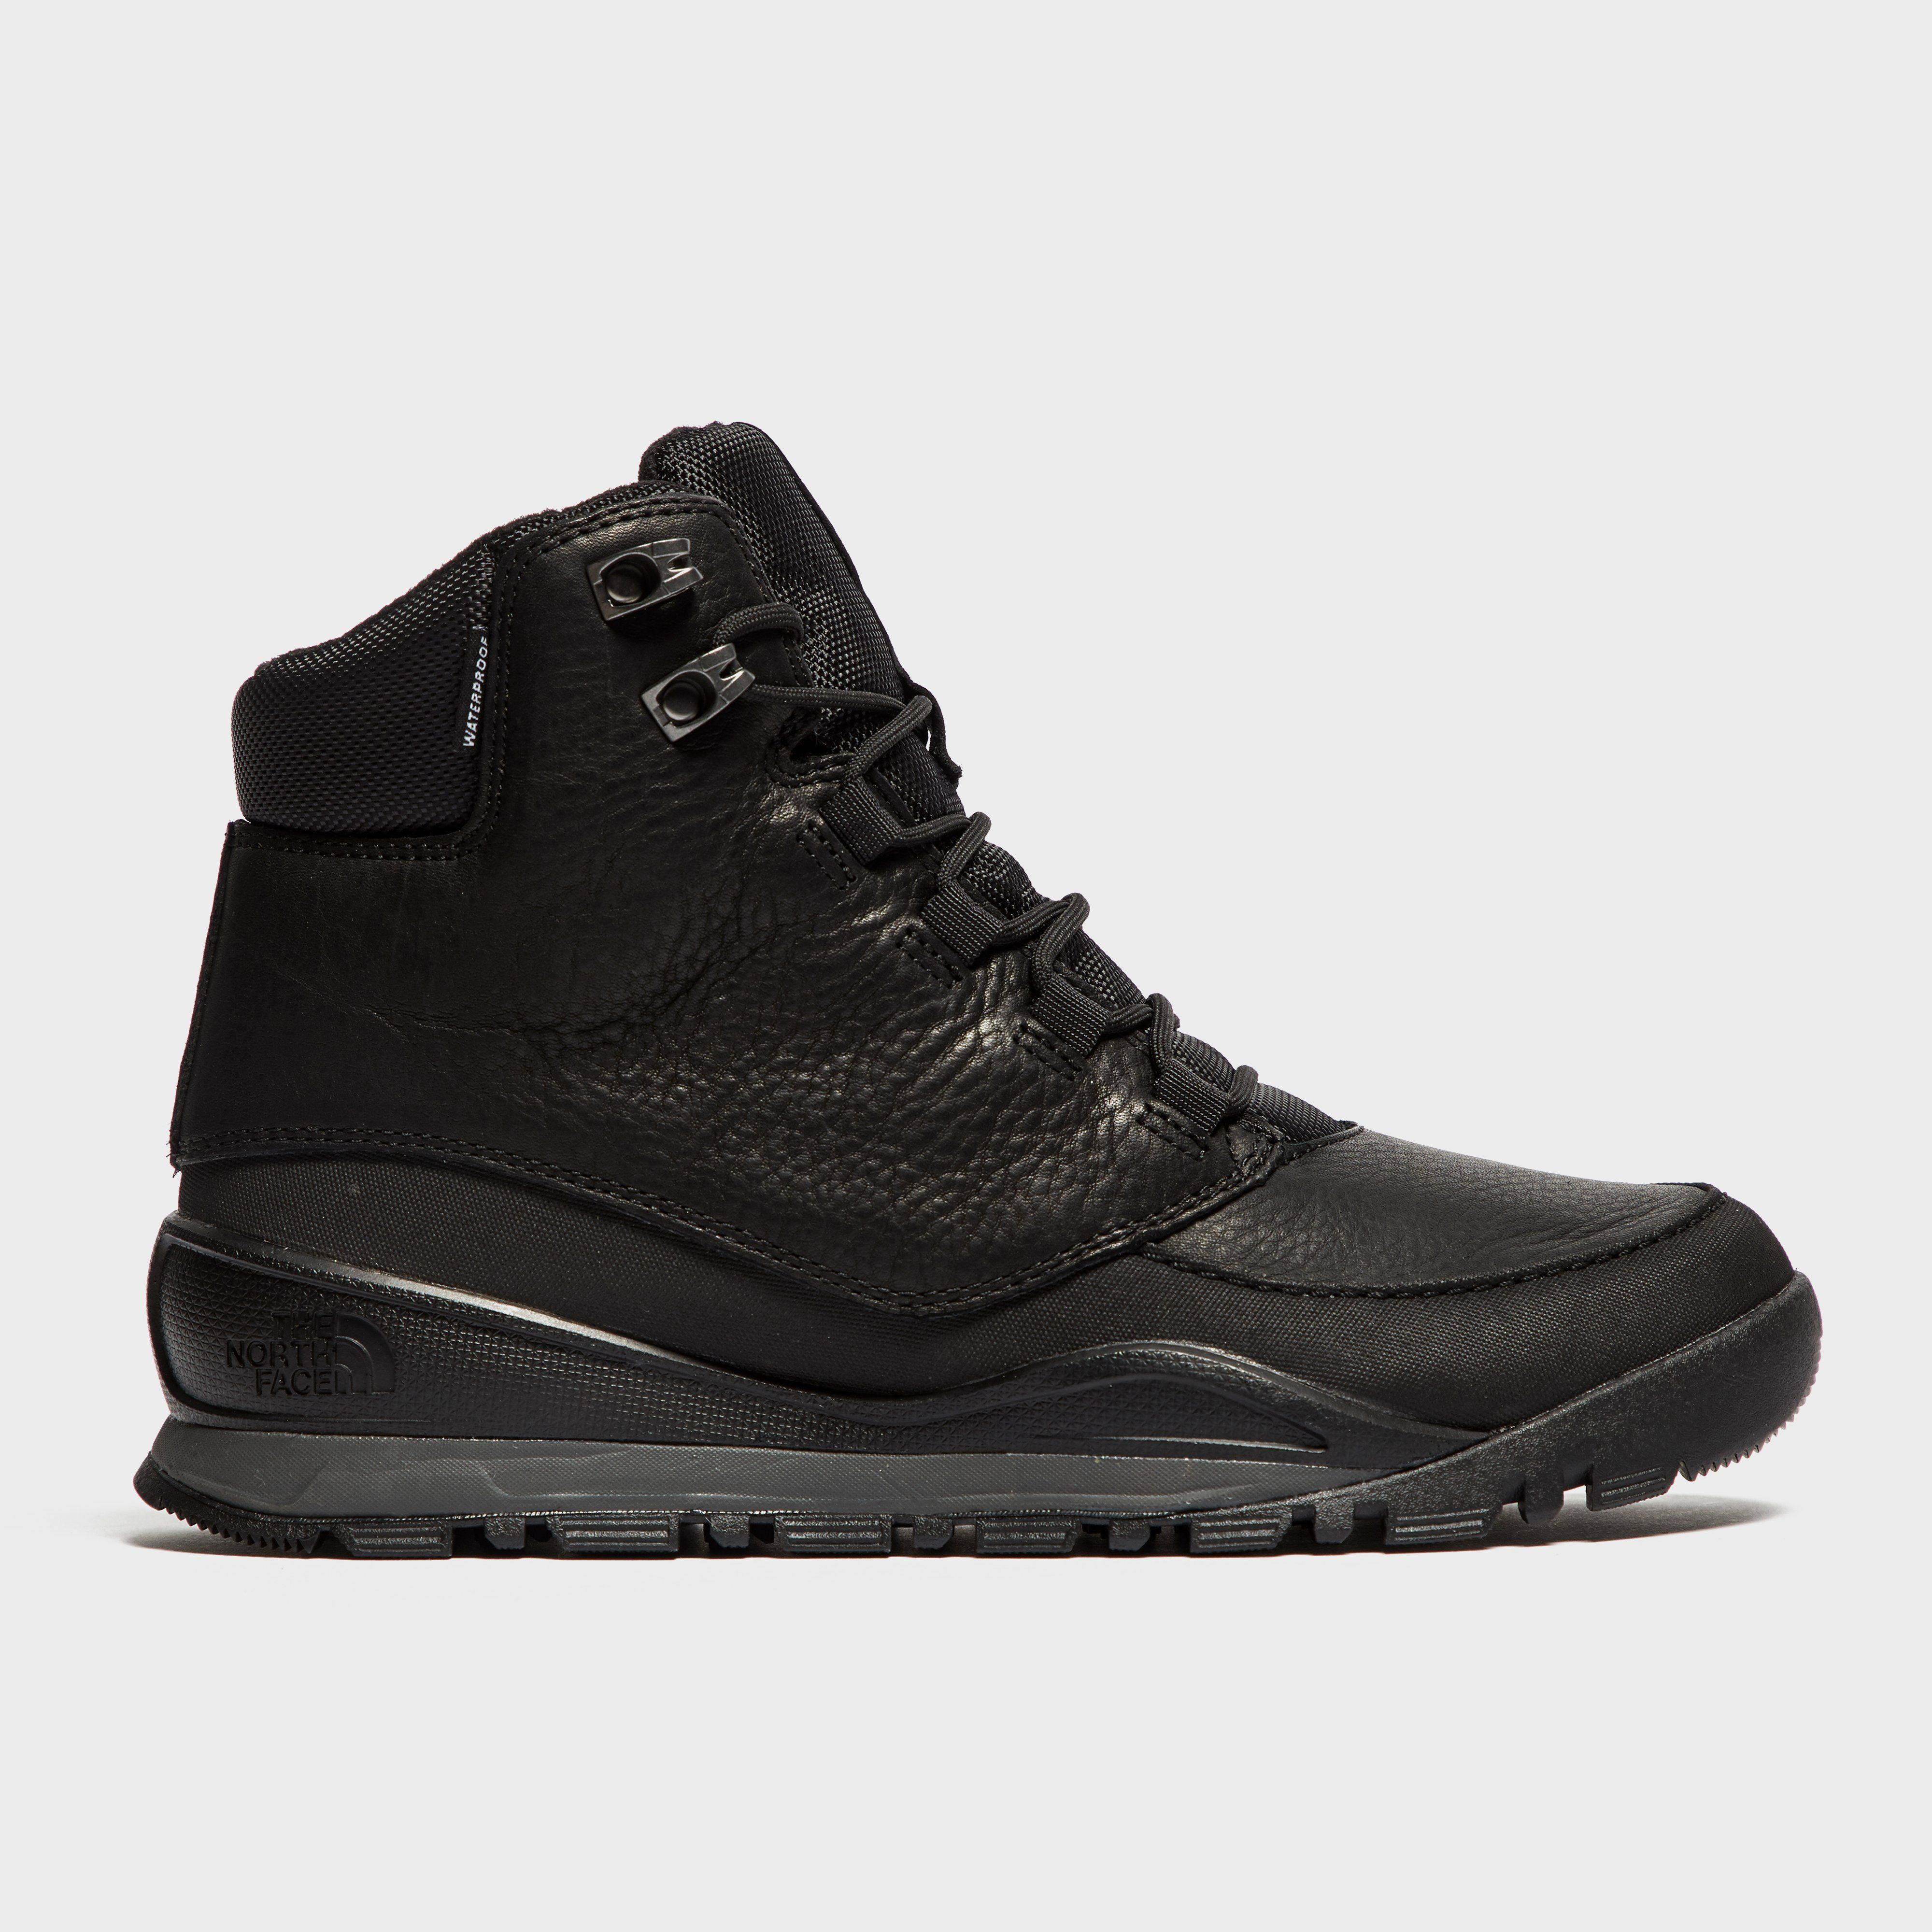 THE NORTH FACE Men's Edgewood Boots